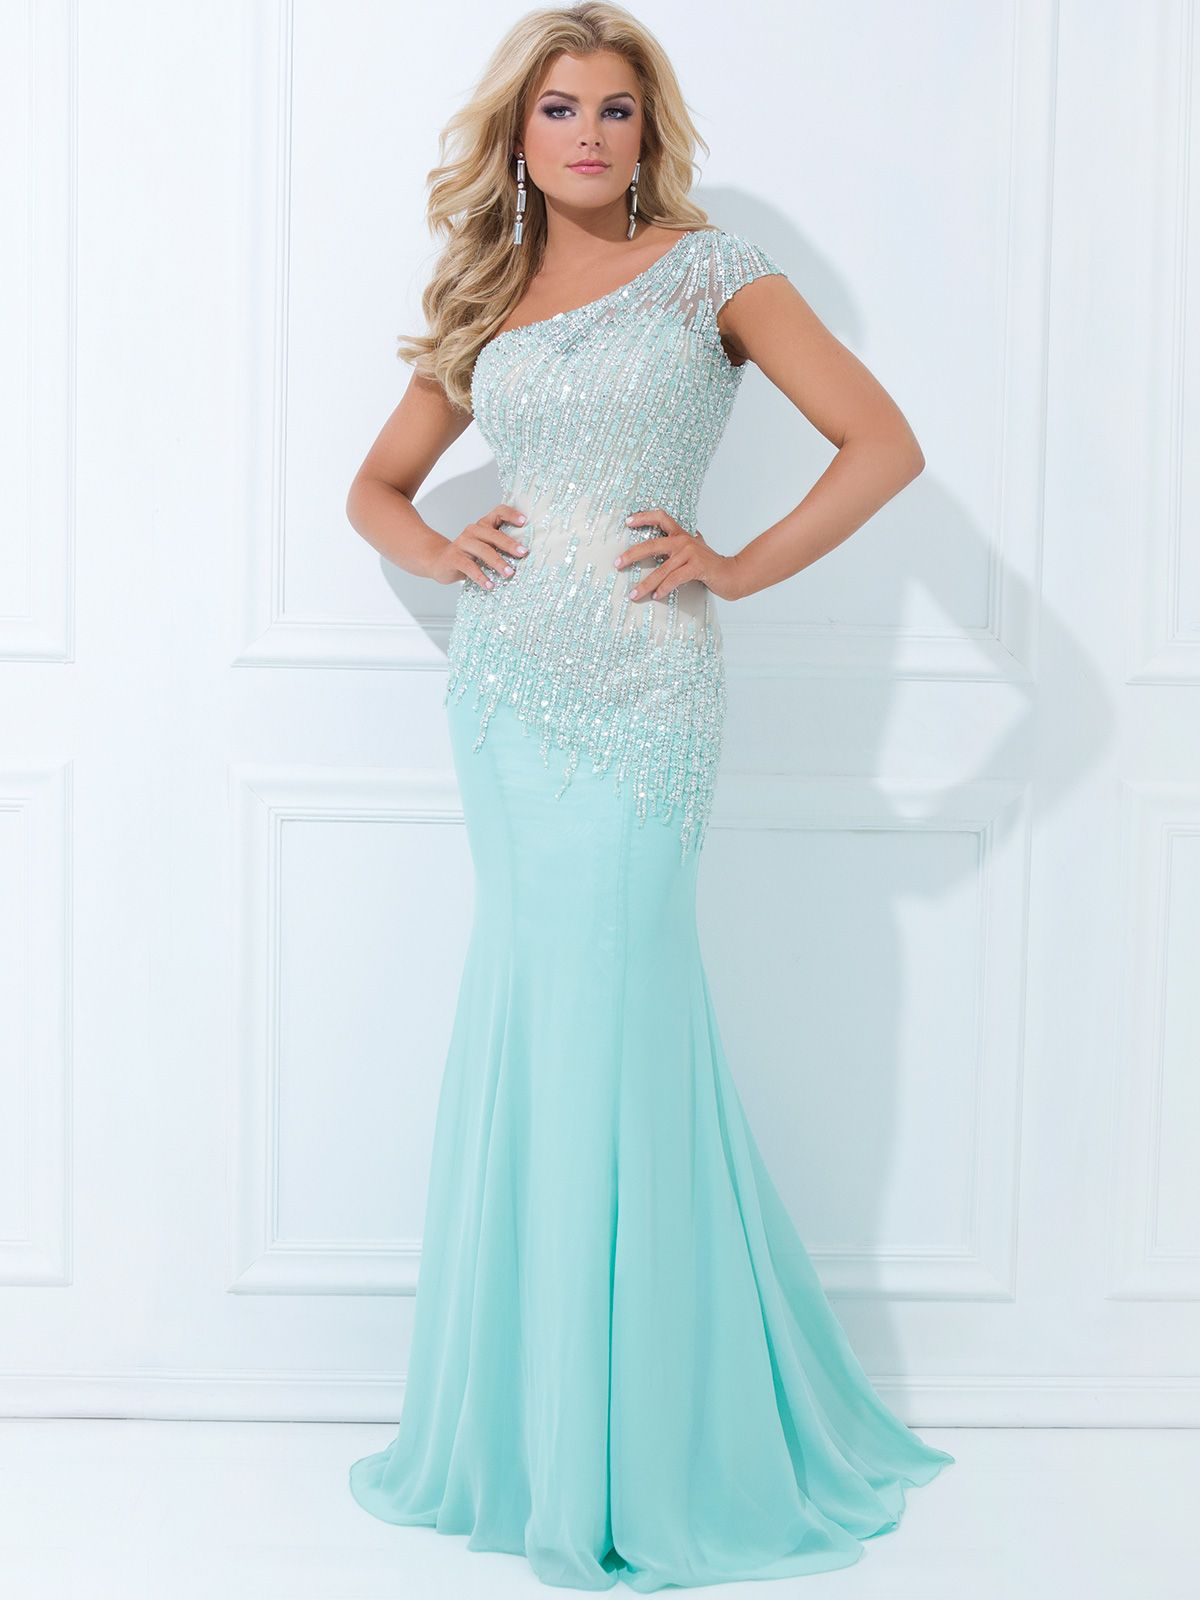 A stunner, this spectacular chiffon Tony Bowls Evening prom dress is a dazzling number. This asymmetrical Tony Bowls Evenings prom dress TBE11439 features one shoulder with a short sleeve, gorgeous beaded bodice adorned with sequins and a sheer illusion overlay, and dropped waistline. This Tony Bowls Evenings prom dress is available in coral, which is one of the most popular colors for this season. Completing this Tony Bowls Evenings prom dress is a mermaid skirt. Make the ultimate ...